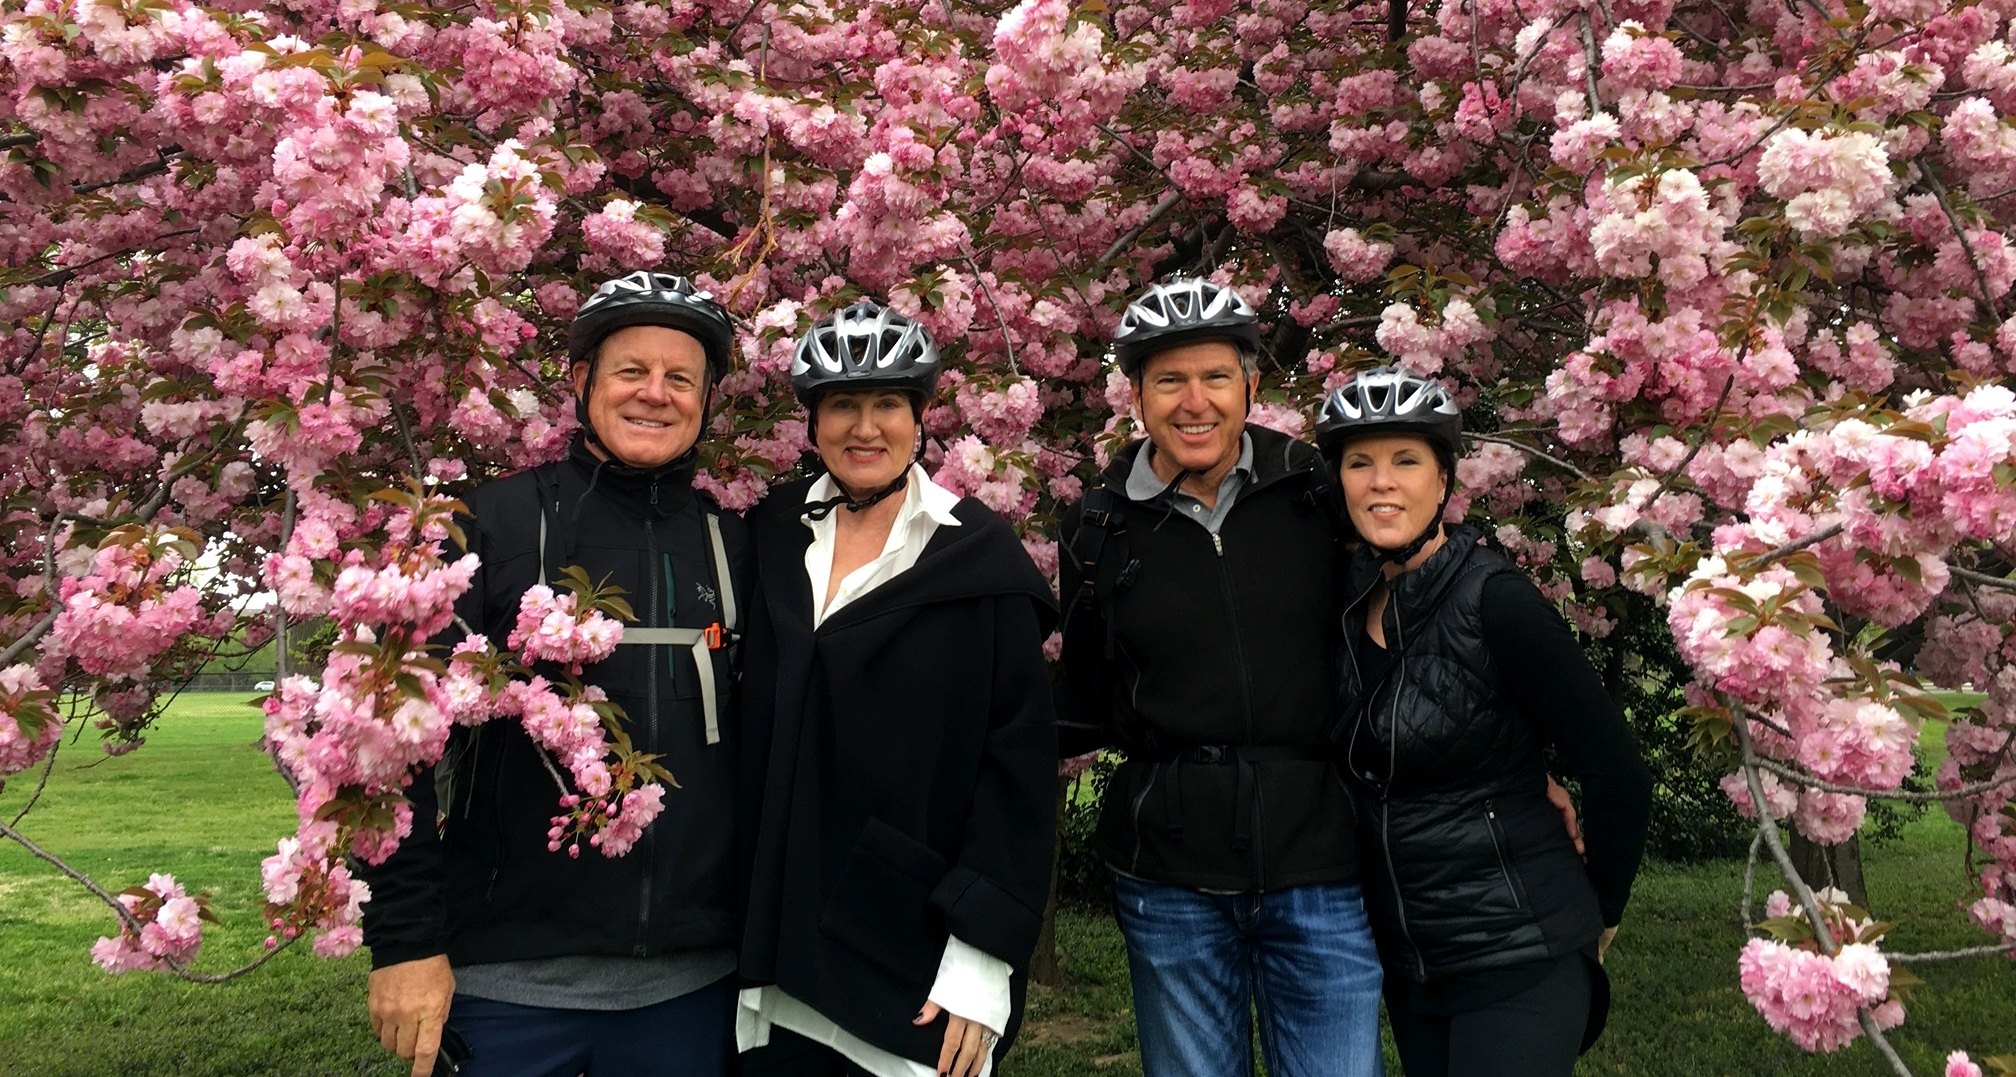 Explore DC in a personal and fun way that gets you up close so our iconic scenery. Cherry blossoms are a bonus.